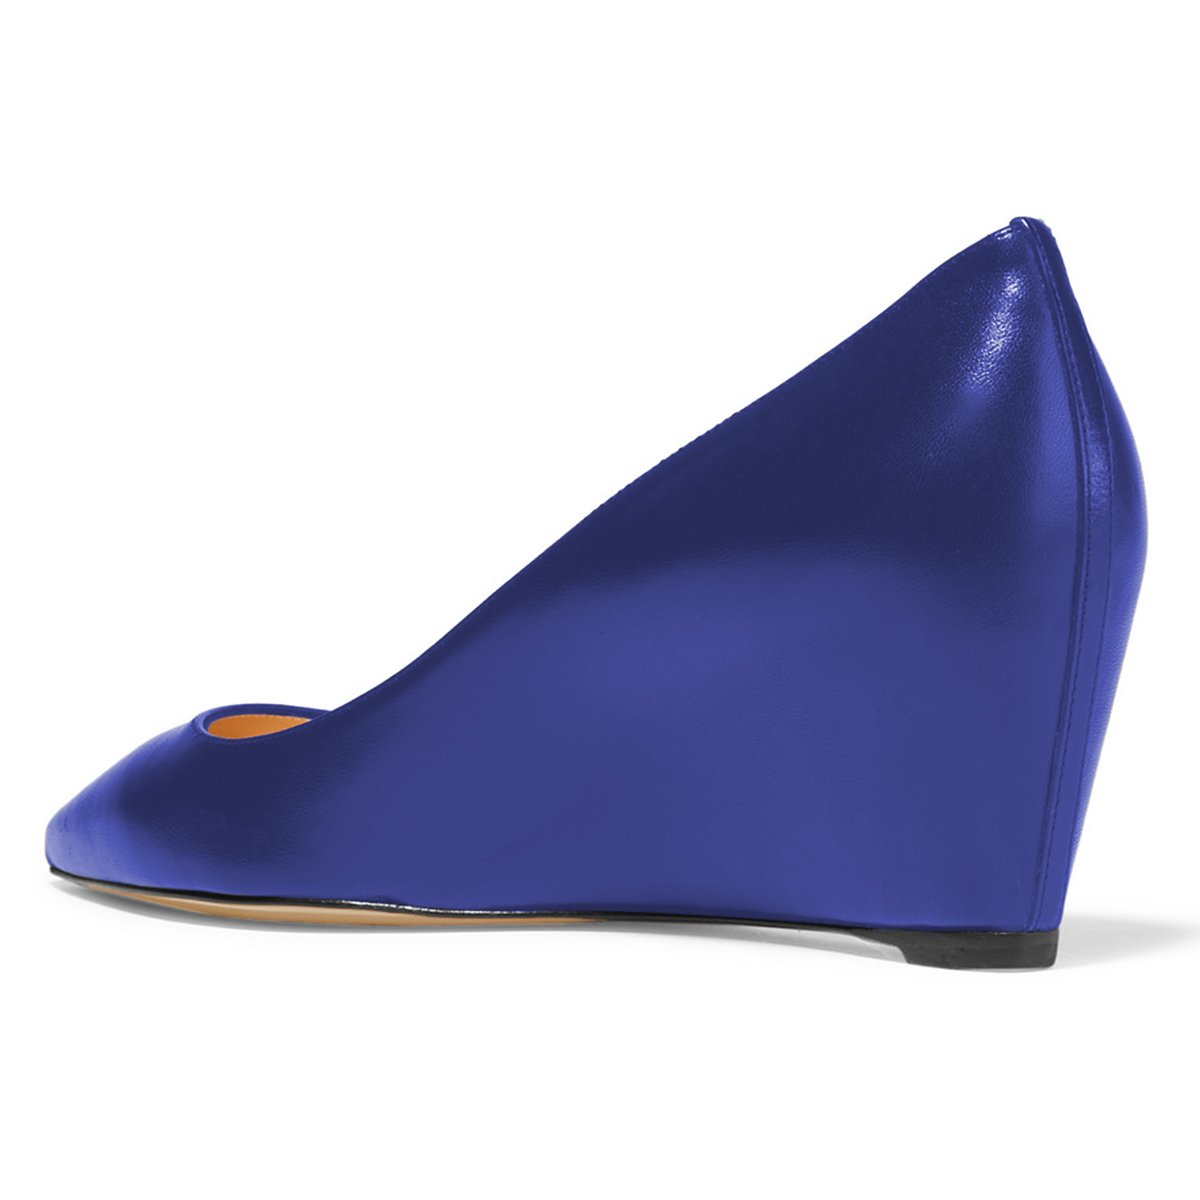 YDN Hidden Women Sexy Pointed Toe Hidden YDN Low Heel Wedge Pumps Slip on Dress Shoes for Office Lady B07C2SN4C8 14 B(M) US|Blue a1a683